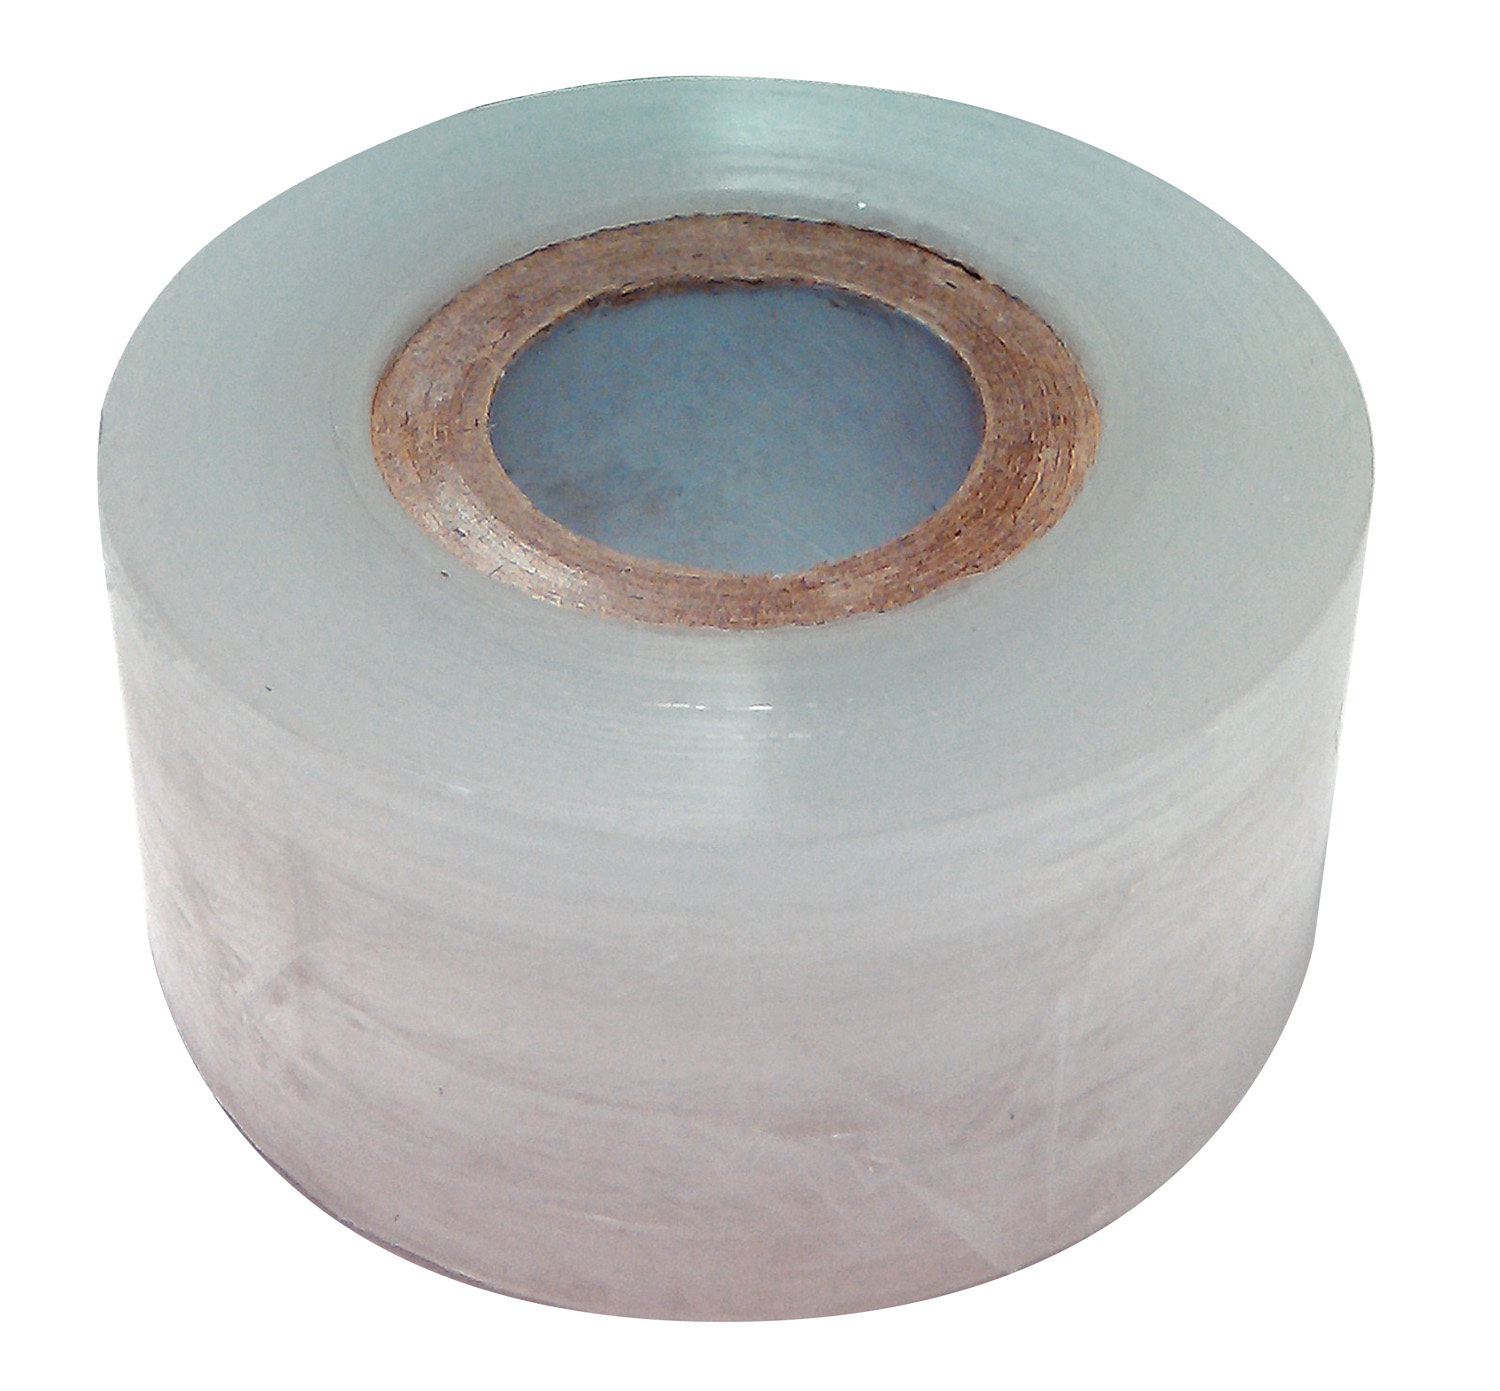 Grafting Tape ZJ825 Film Grafting Tape, 1.2-Inches Wide by 426-Feet Long